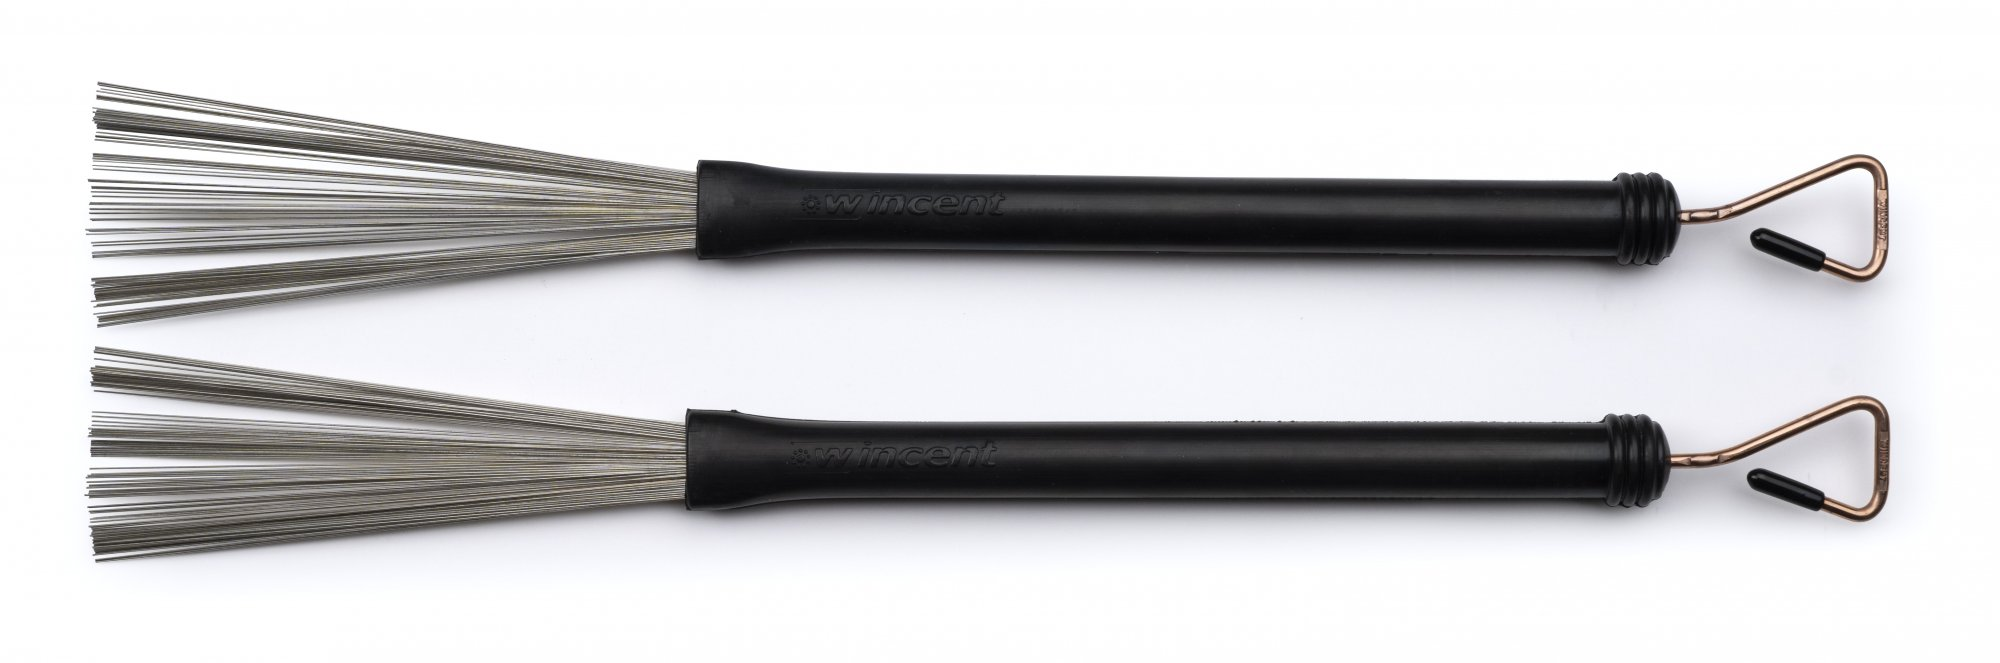 Wincent W40H Pro Brush Heavy Steel Wire Brushes